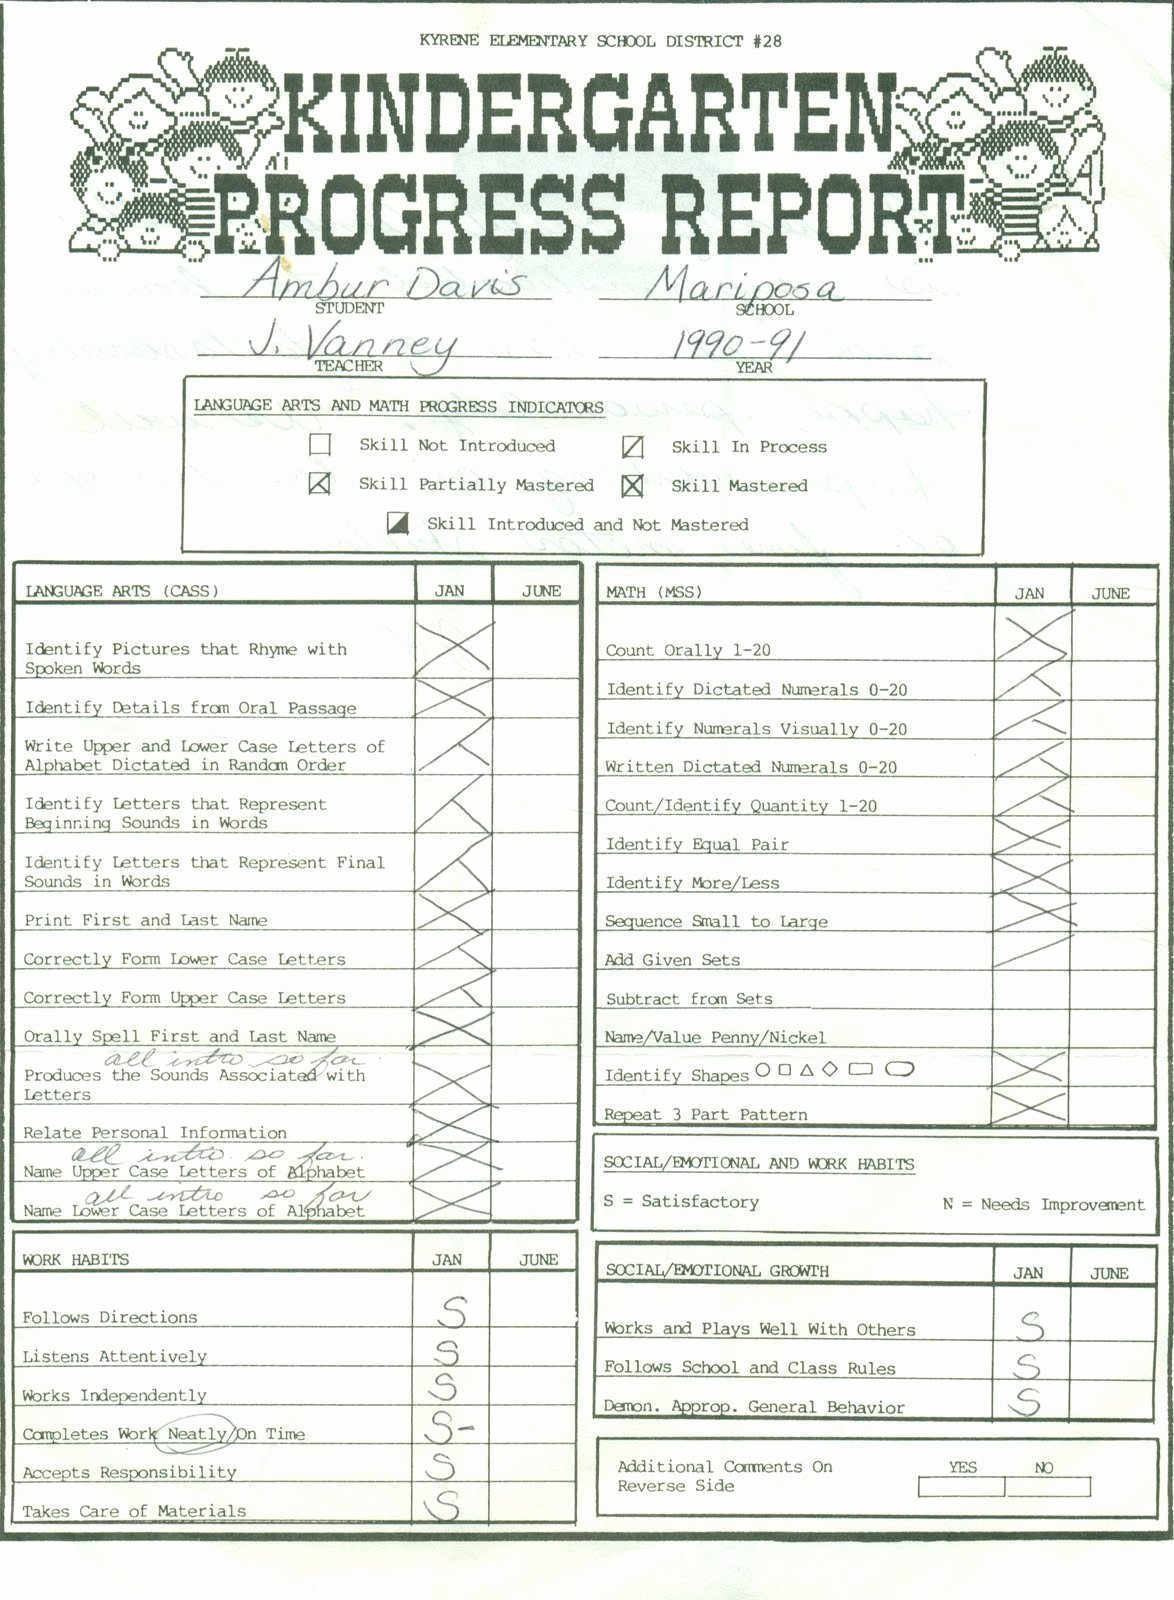 Kindergarten Report Card Template Unique A Gift From Heaven 1990 Skills Report Card and Progress